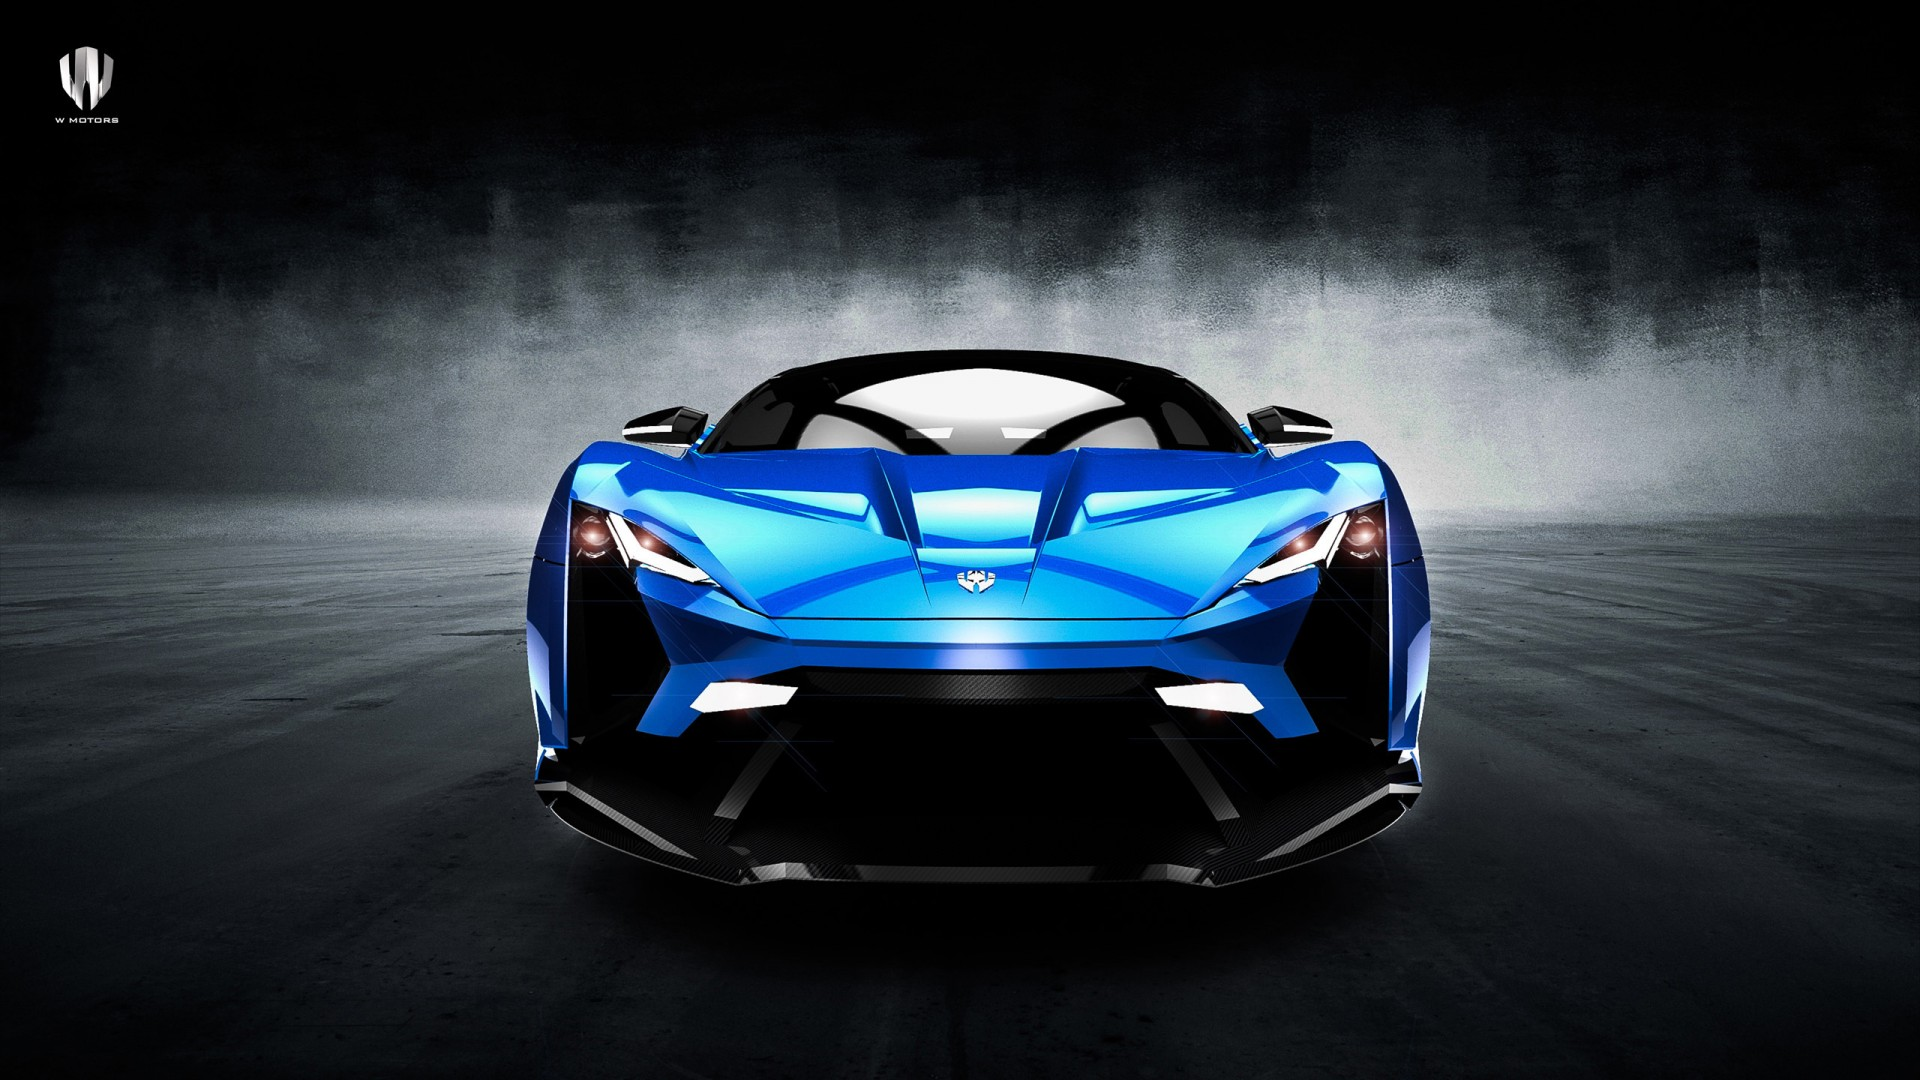 Full Hd Sports Car Wallpapers: 2015 W Motors Lykan SuperSport Wallpaper